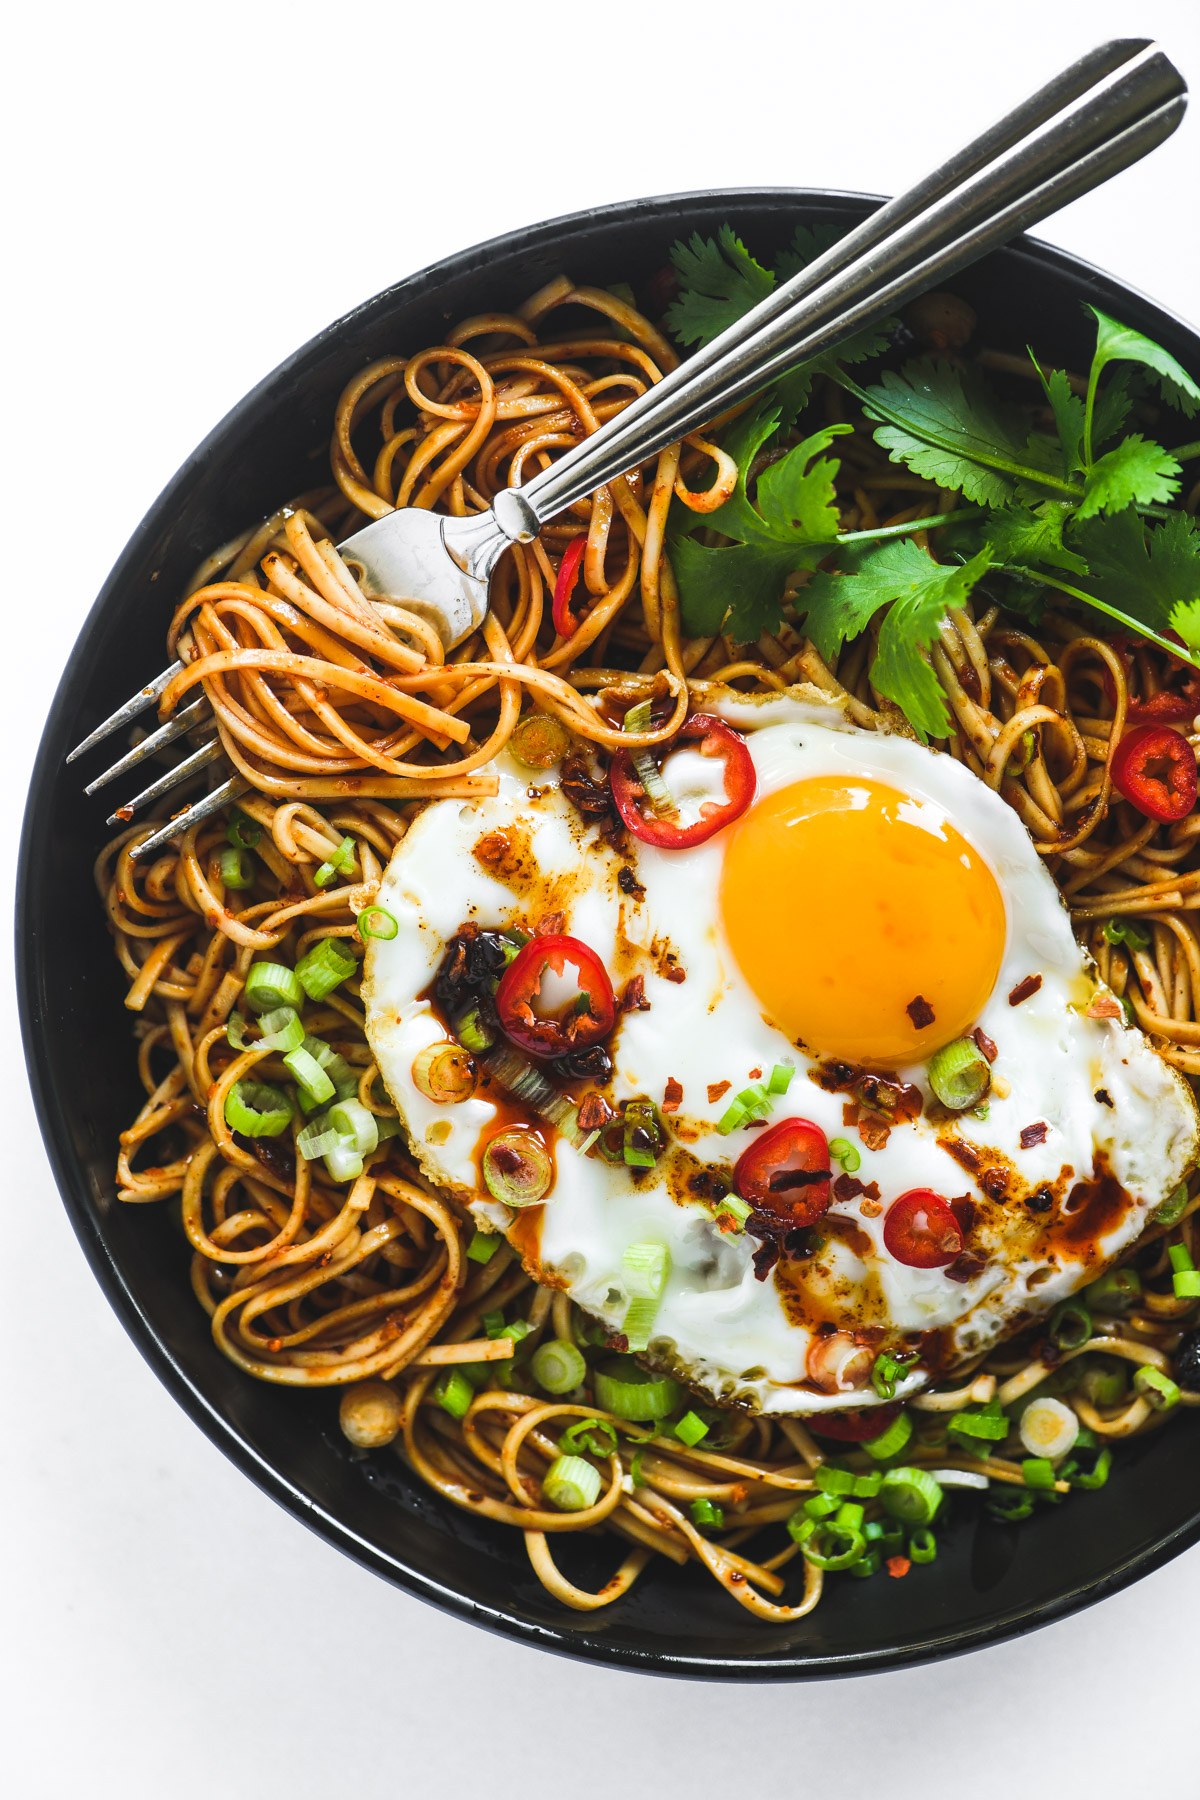 quick chili oil noodles in a black bowl with a fried egg